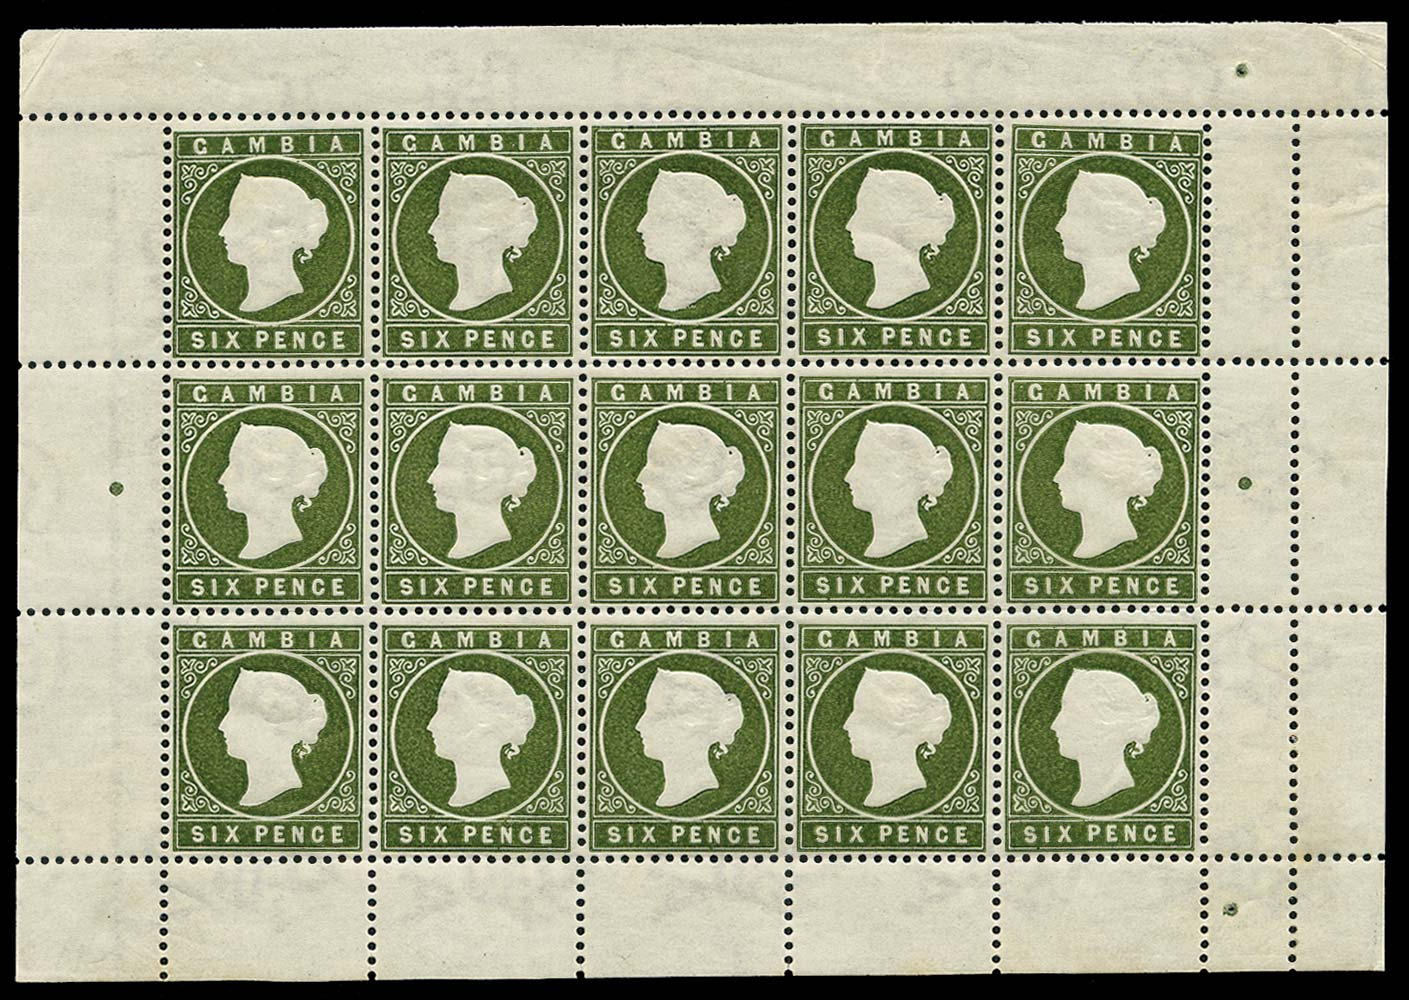 GAMBIA 1886  SG33c/ca Mint Complete sheet with Sloping Label variety